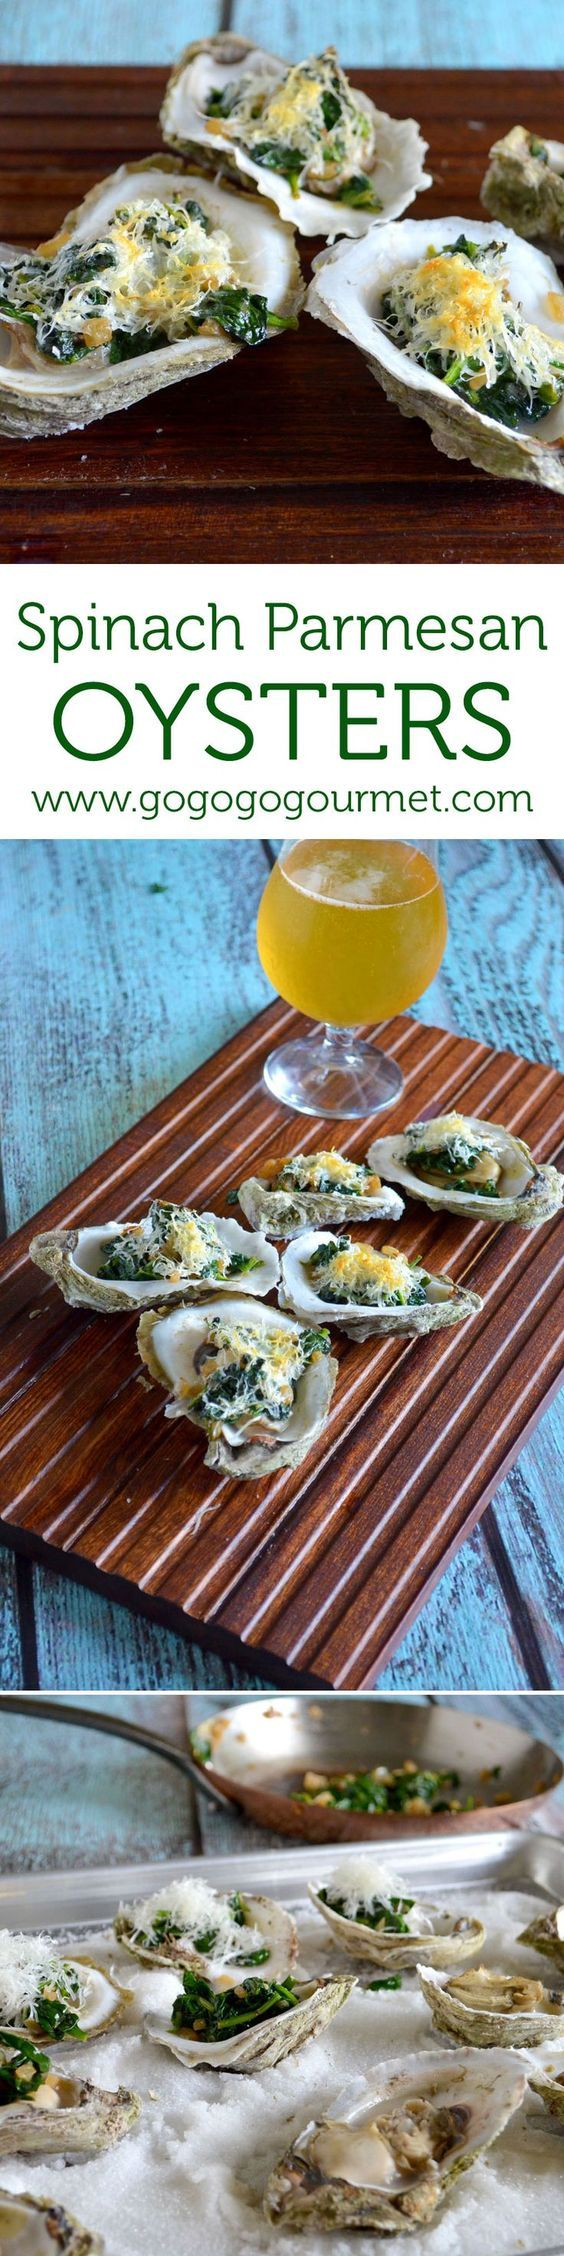 These Spinach Parmesan oysters are baked making them easy to shuck!